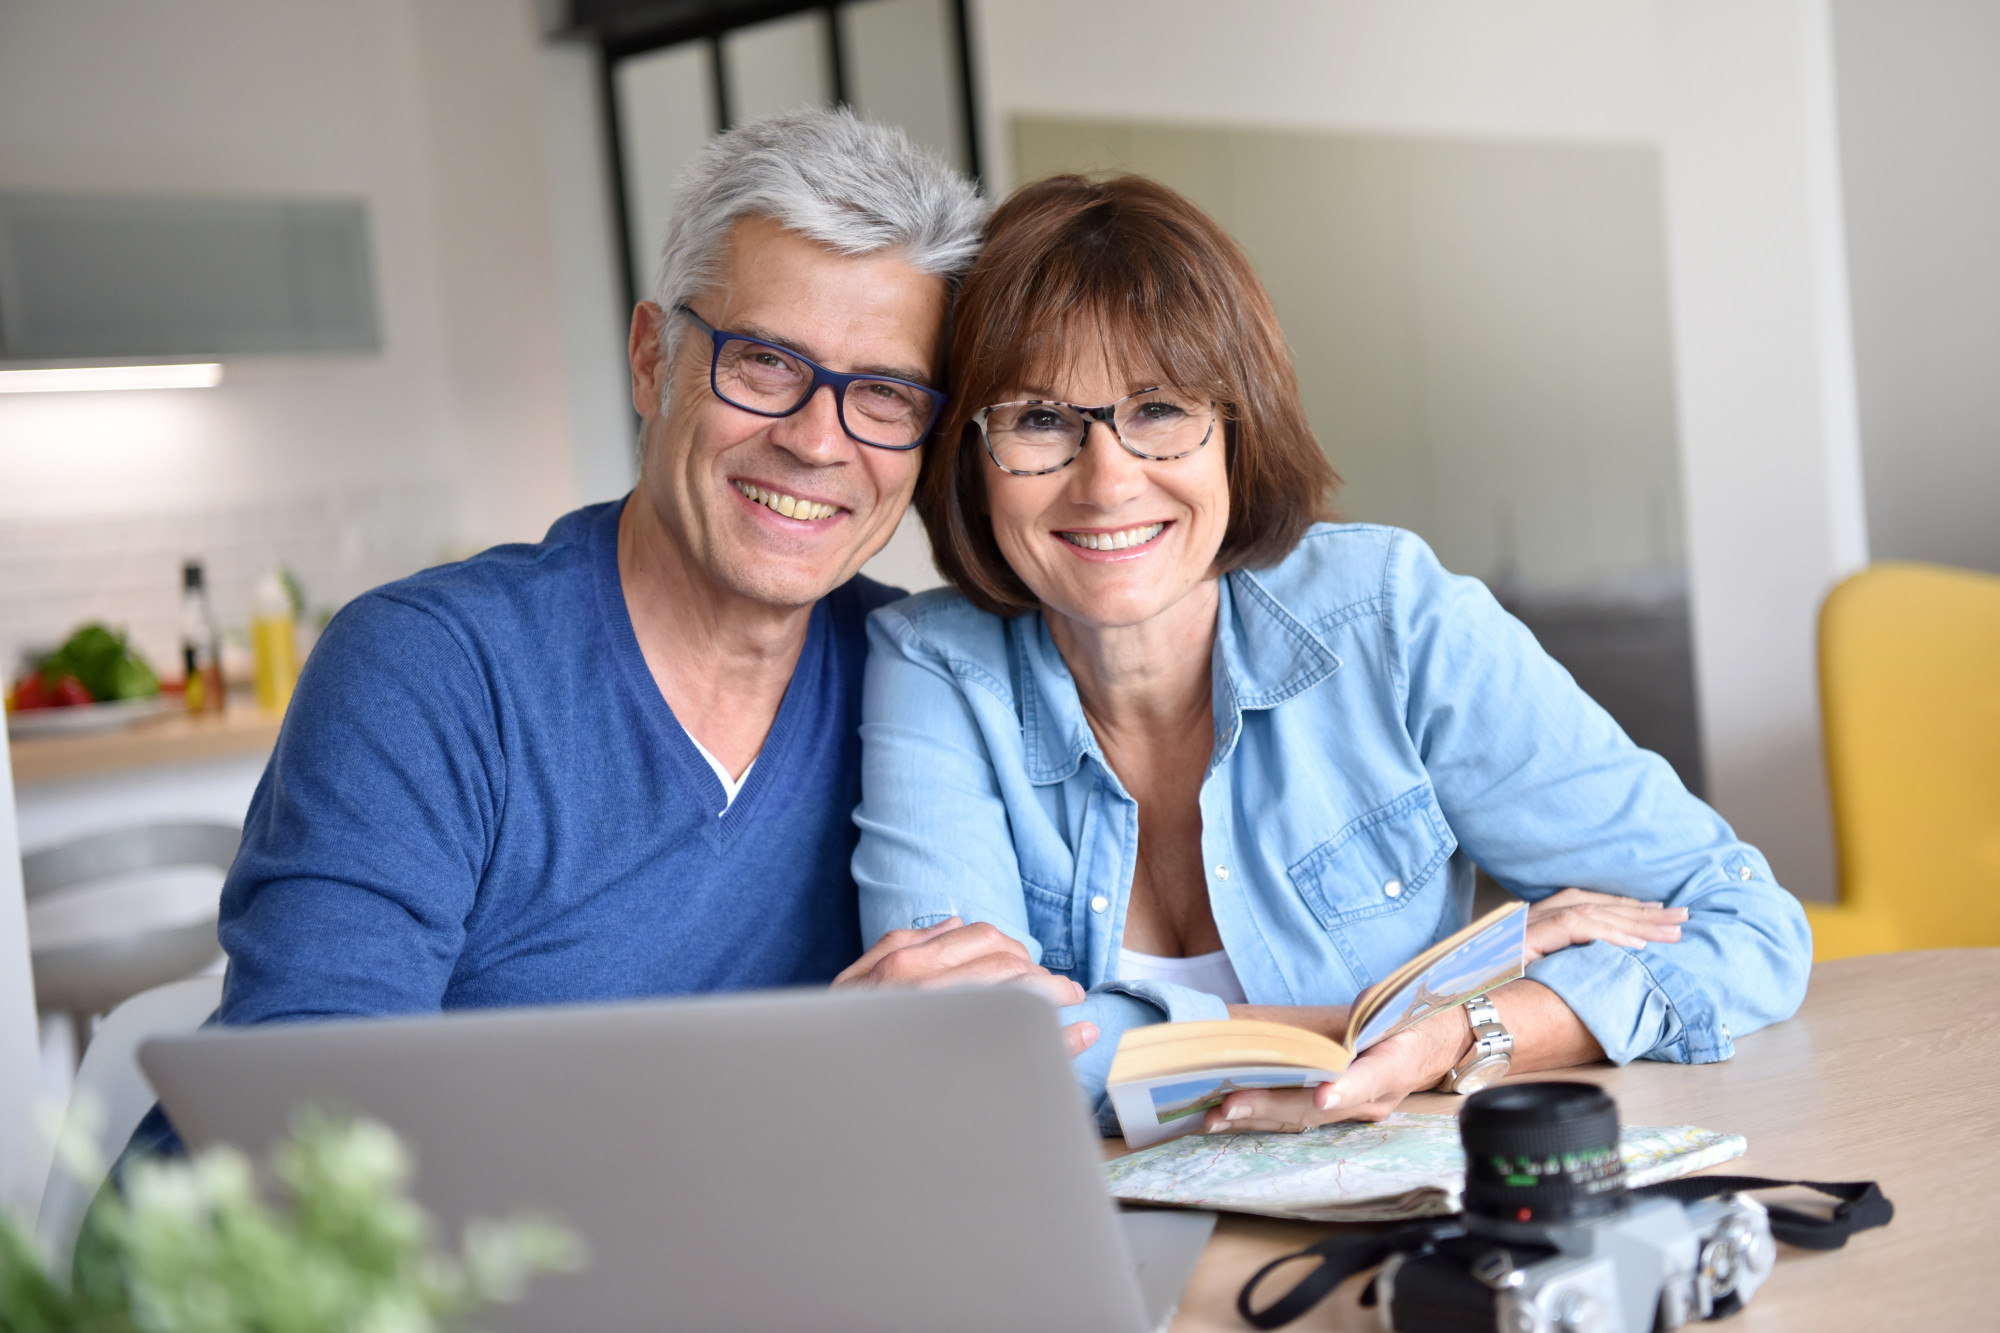 It is never too early to begin preparing your finances for your retirement. Check out these 5 helpful retirement planning tips to help you get started.